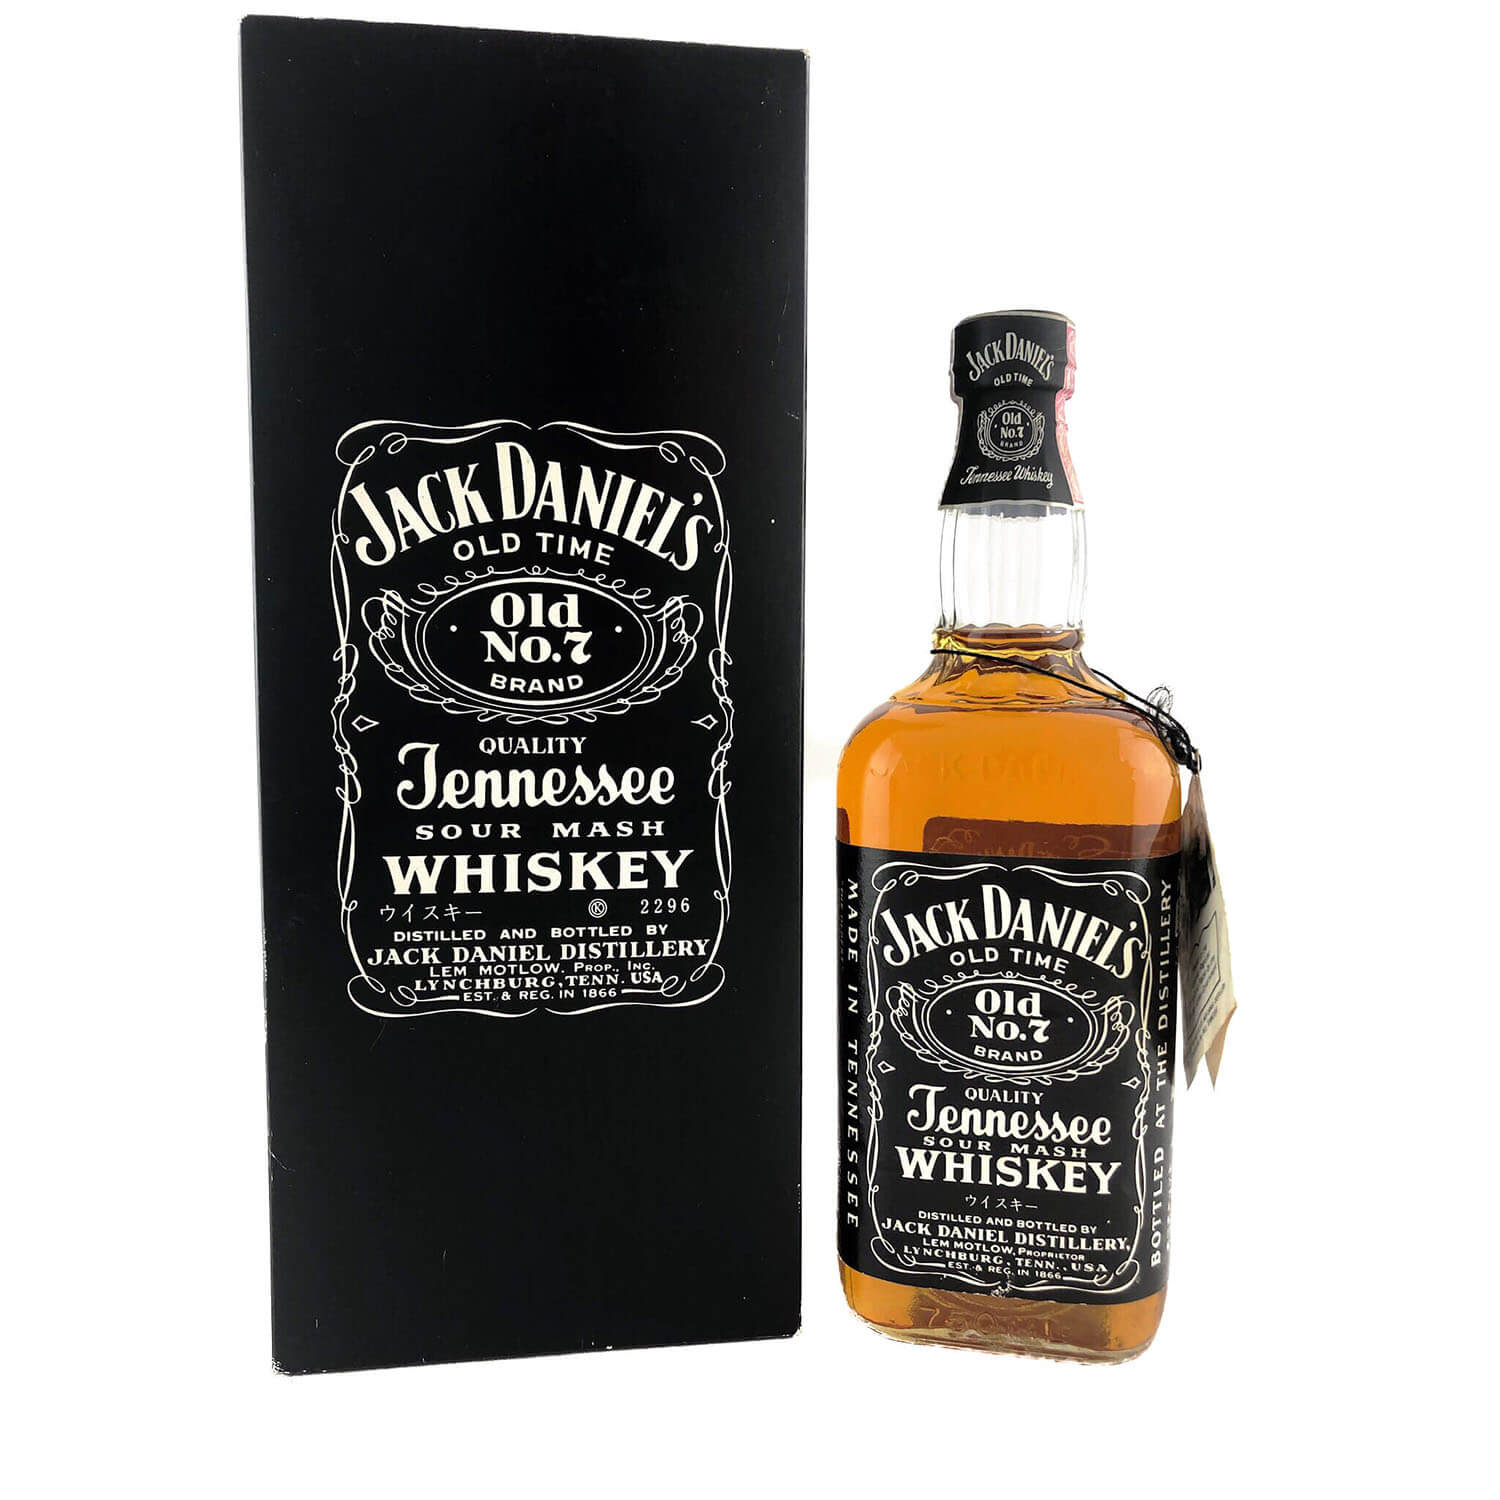 JACK DANIELS IF YOU/'RE THE KIND OF PERSON HANG TAG FROM JAPAN